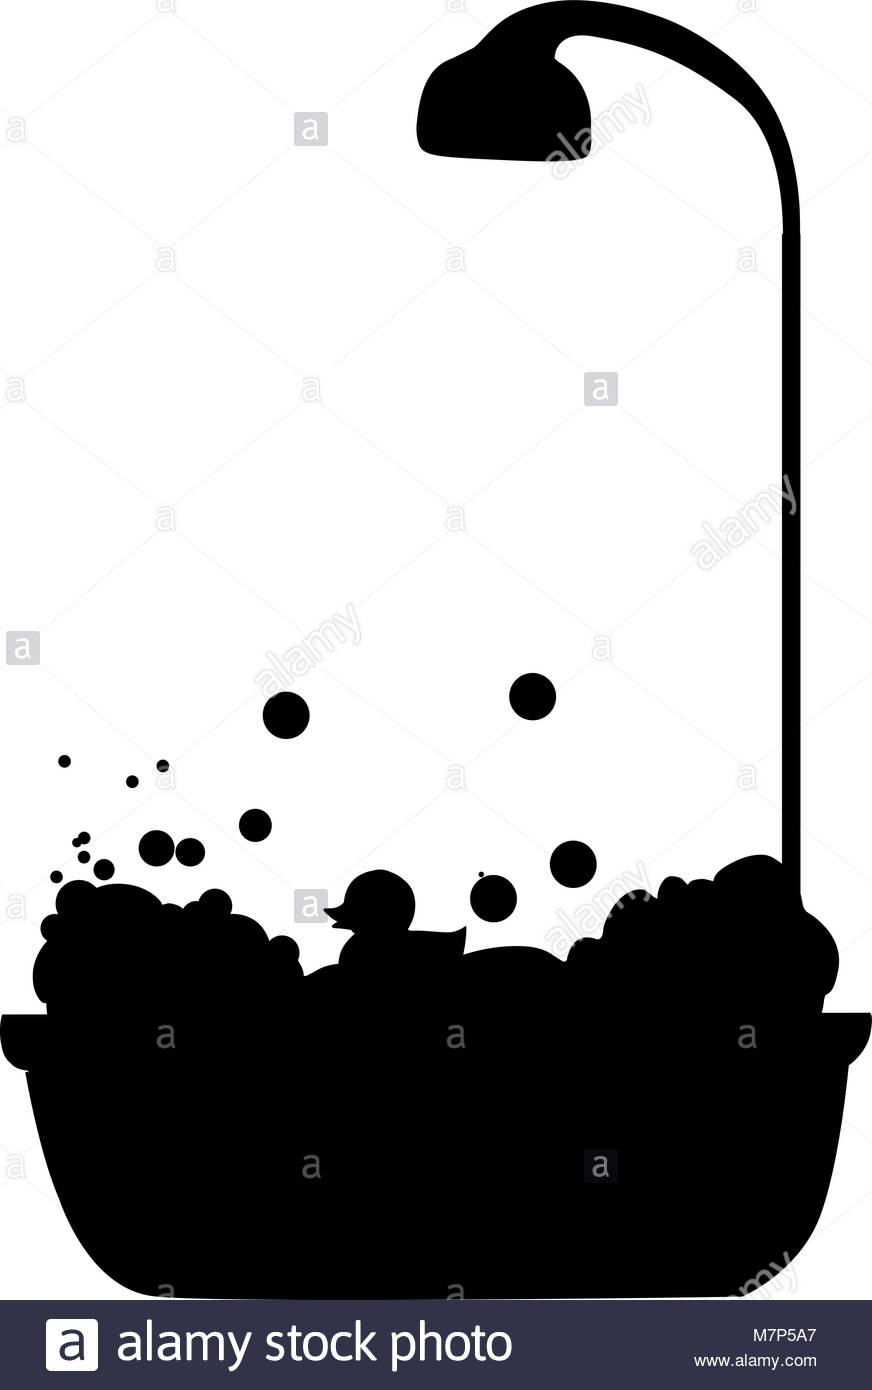 shower head clip art. Black Silhouette Of Bathtub With Shower Head Full Bubble Foam And Bath Rubber Duck Icon Isolated On White Background. Time Vector Illustratio Clip Art